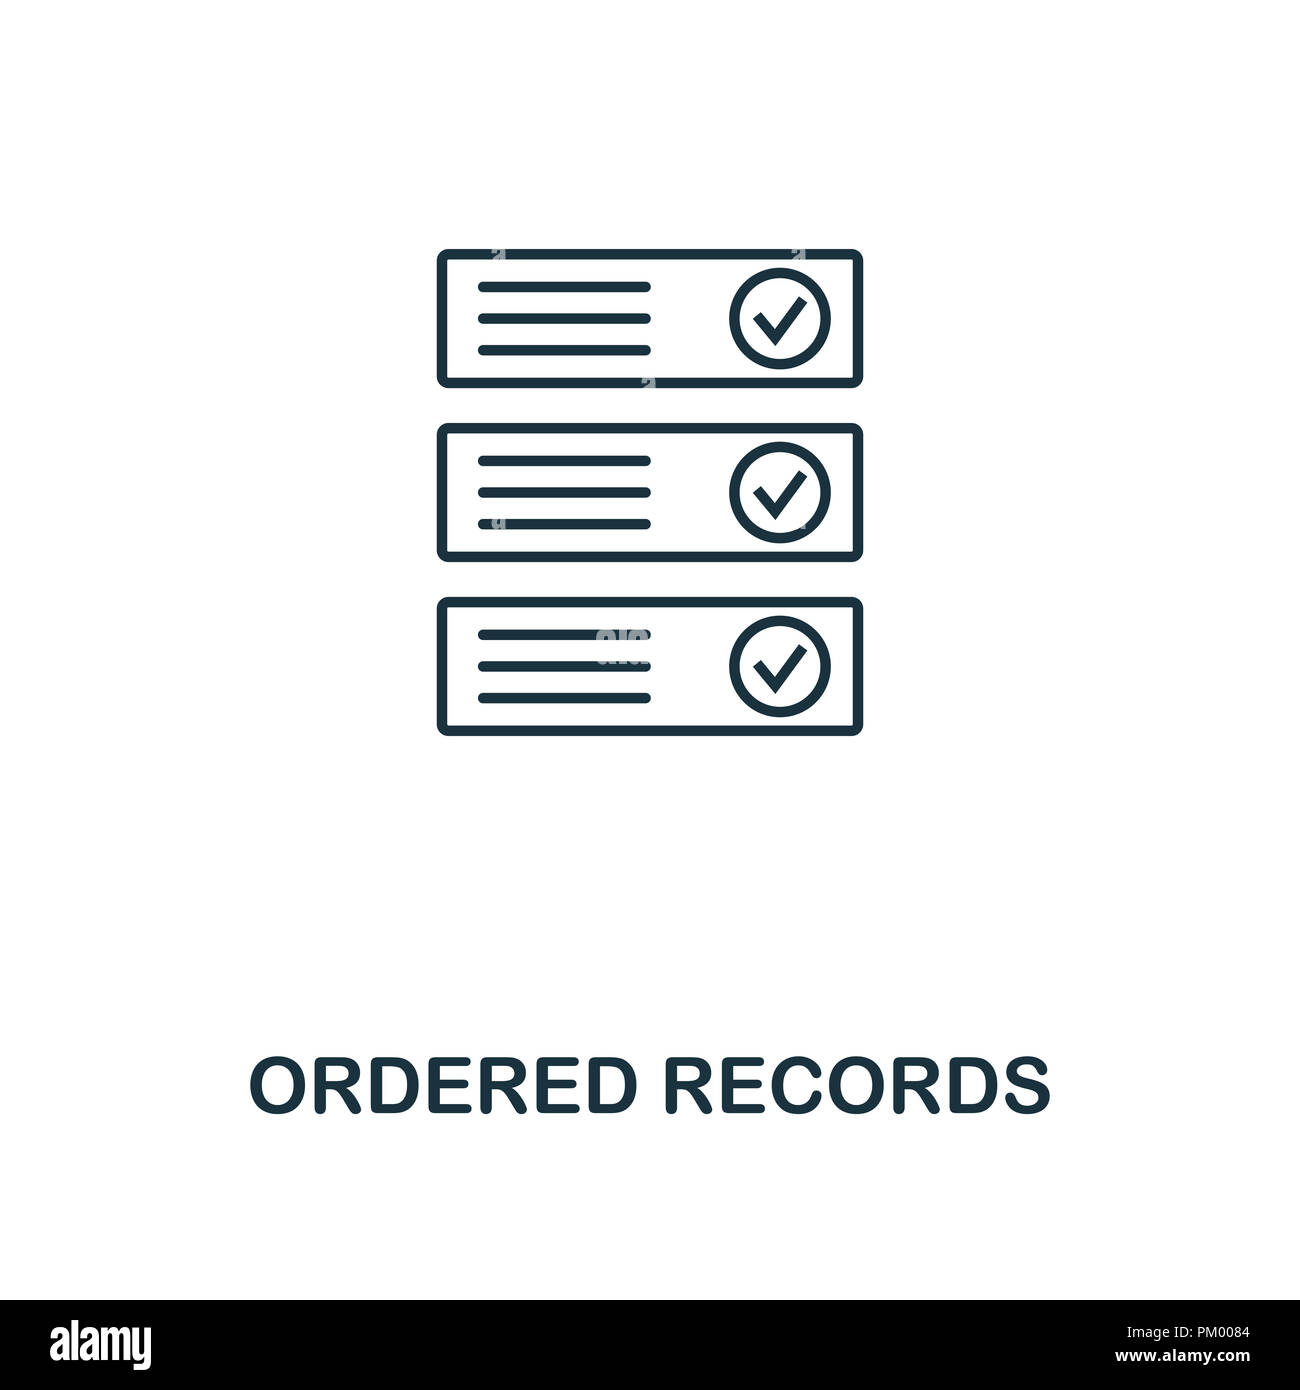 Ordered Records outline icon. Monochrome style design from crypto currency collection. UI. Pixel perfect simple pictogram outline ordered records icon - Stock Image